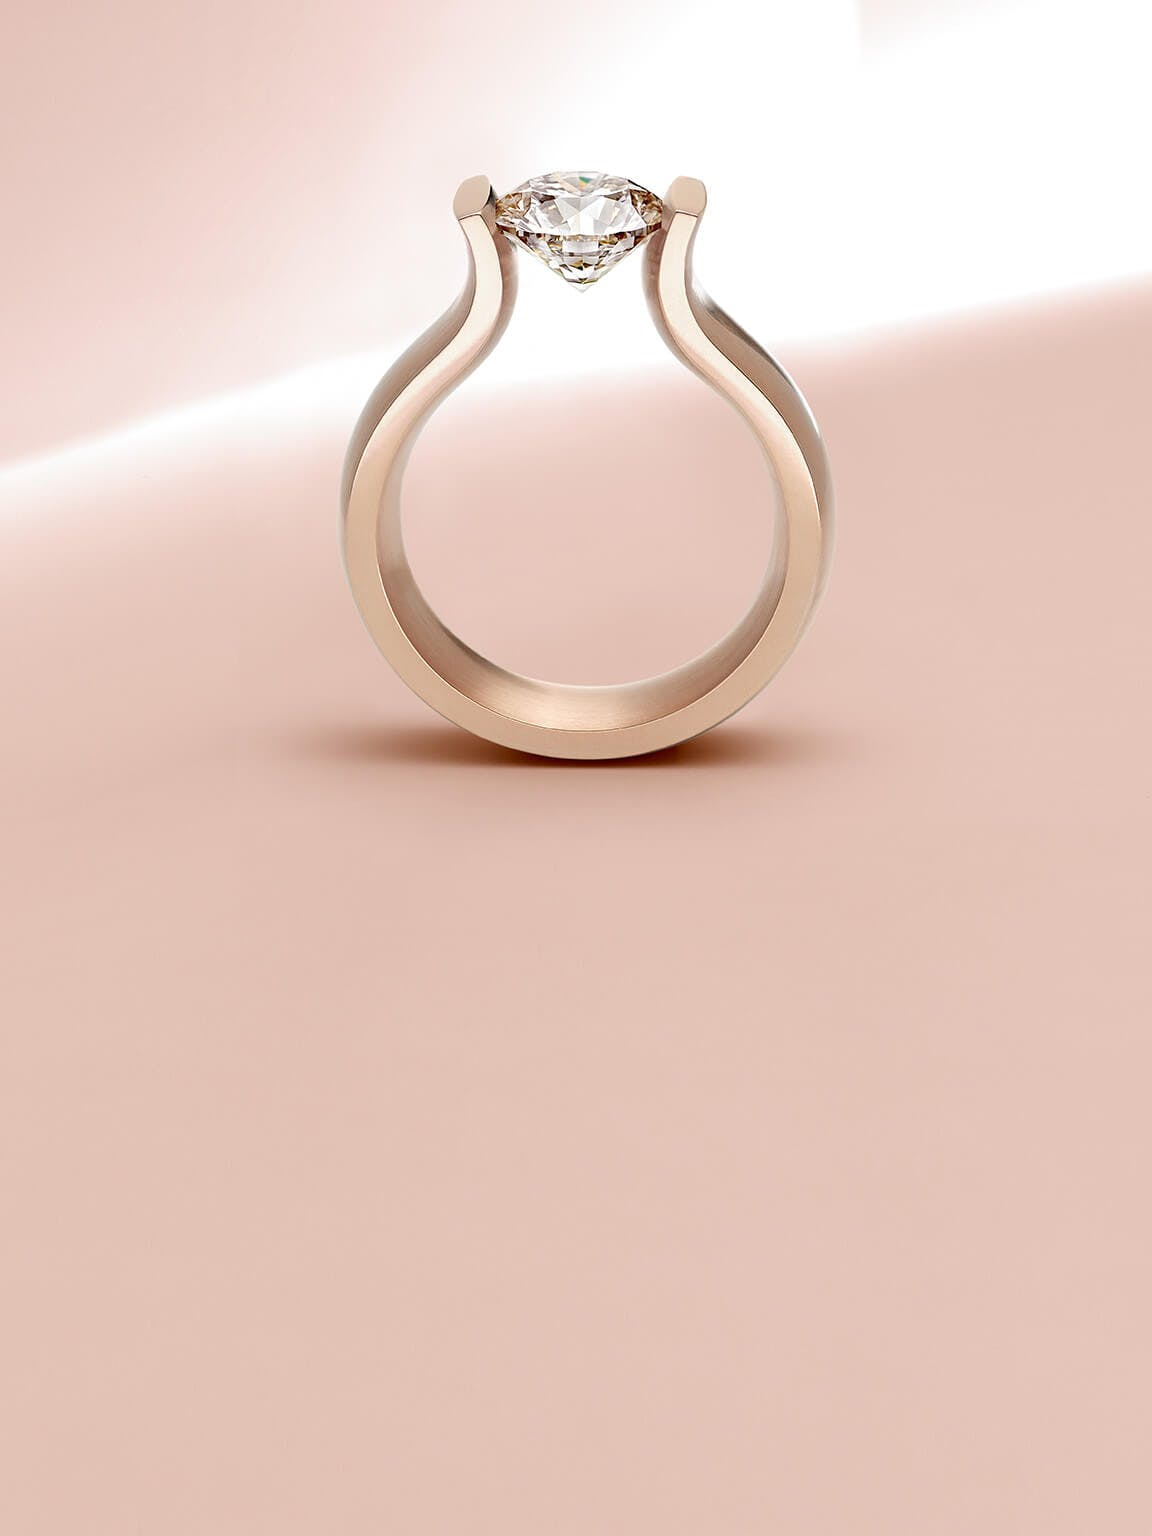 It is just a graphic of Niessing – Wedding Rings, Engagement Rings, Tension Rings